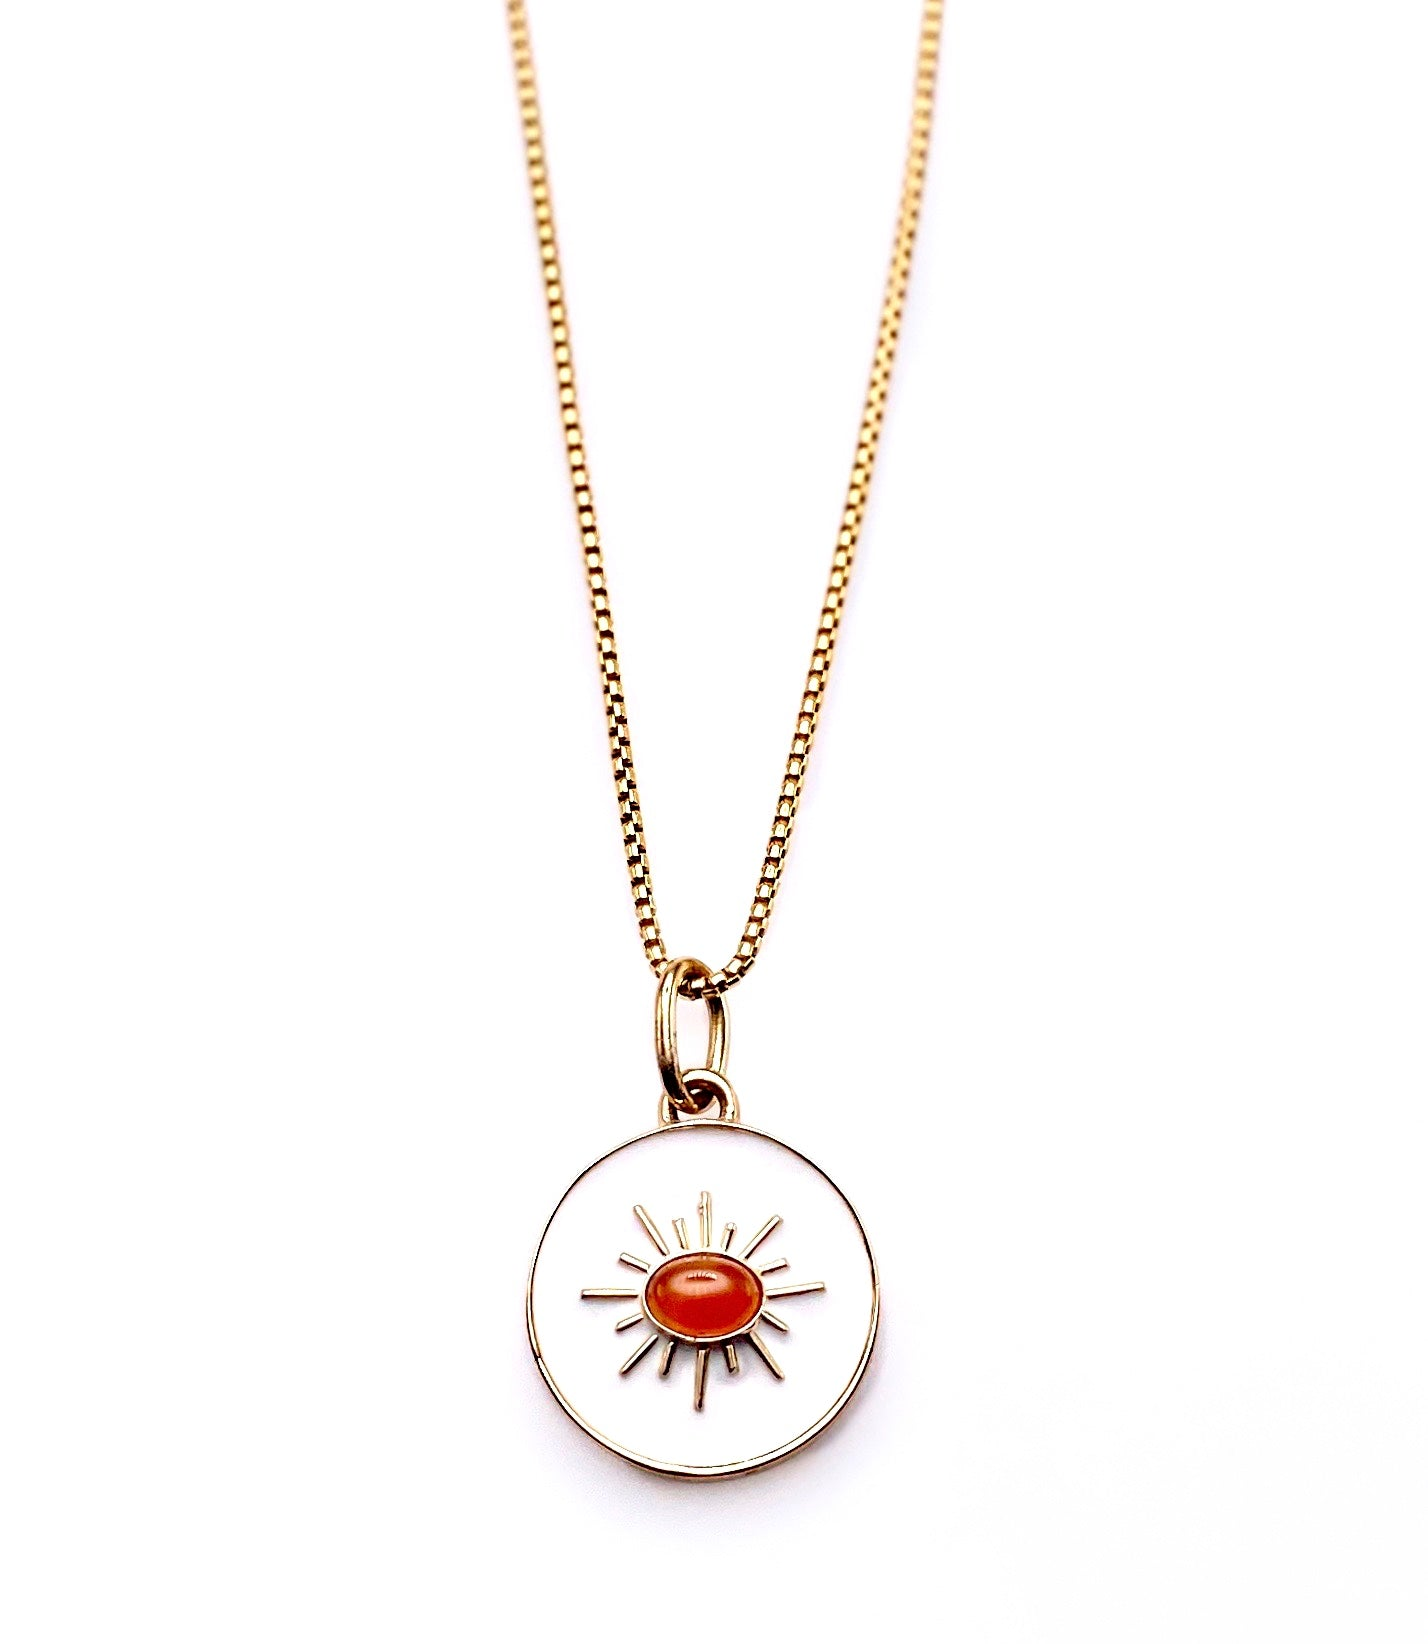 Carnelian Enamel Pendant Necklace